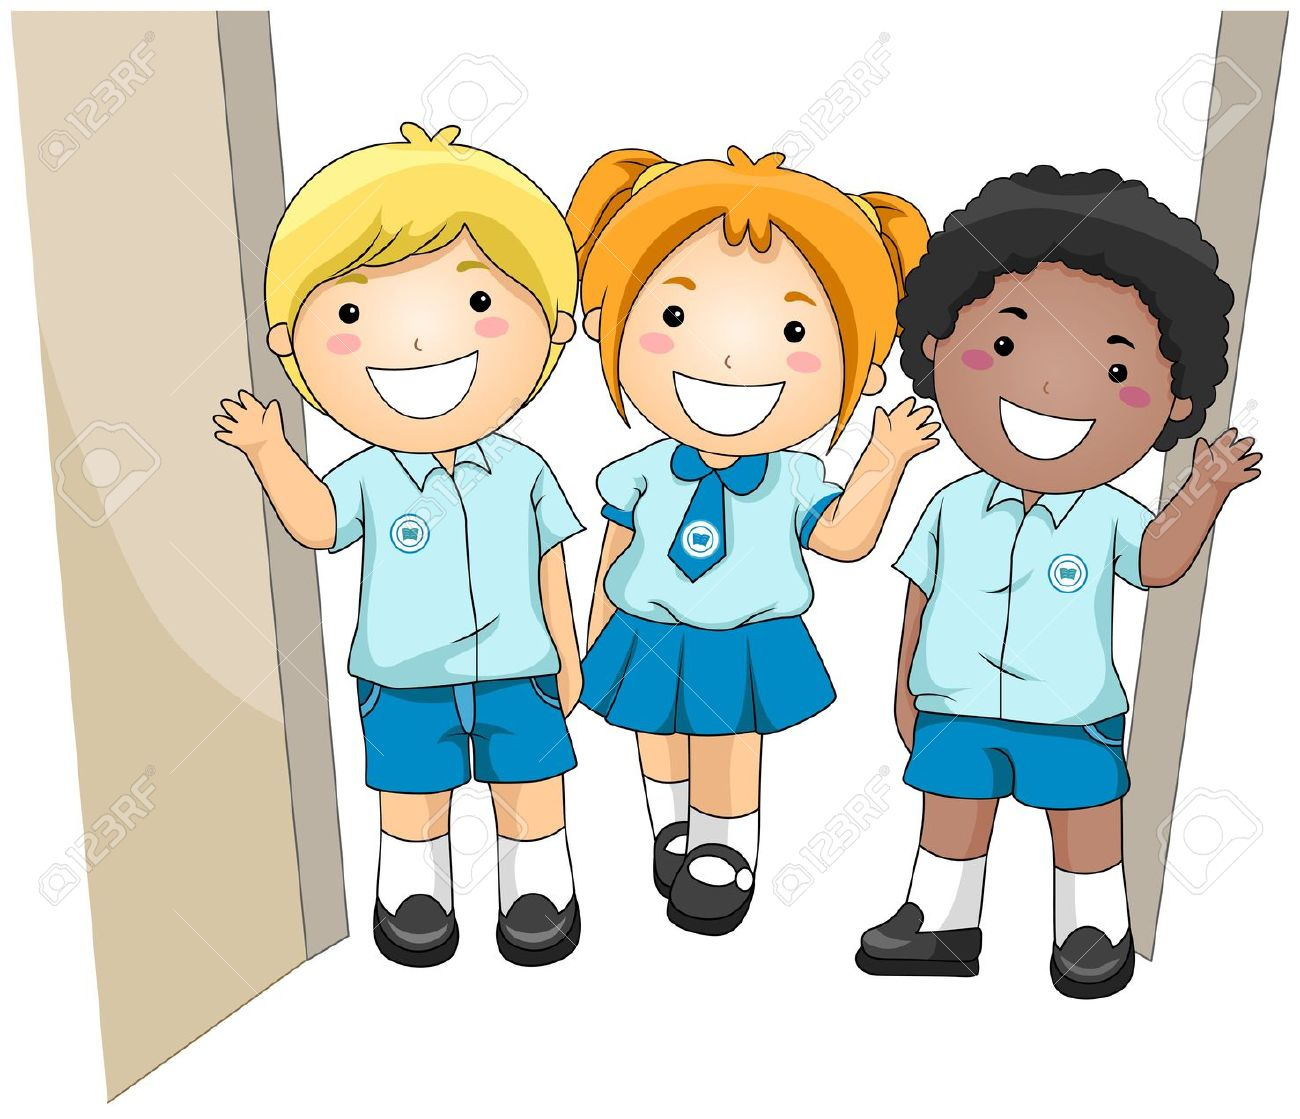 School student images clipart graphic 32+ Clipart Students | ClipartLook graphic